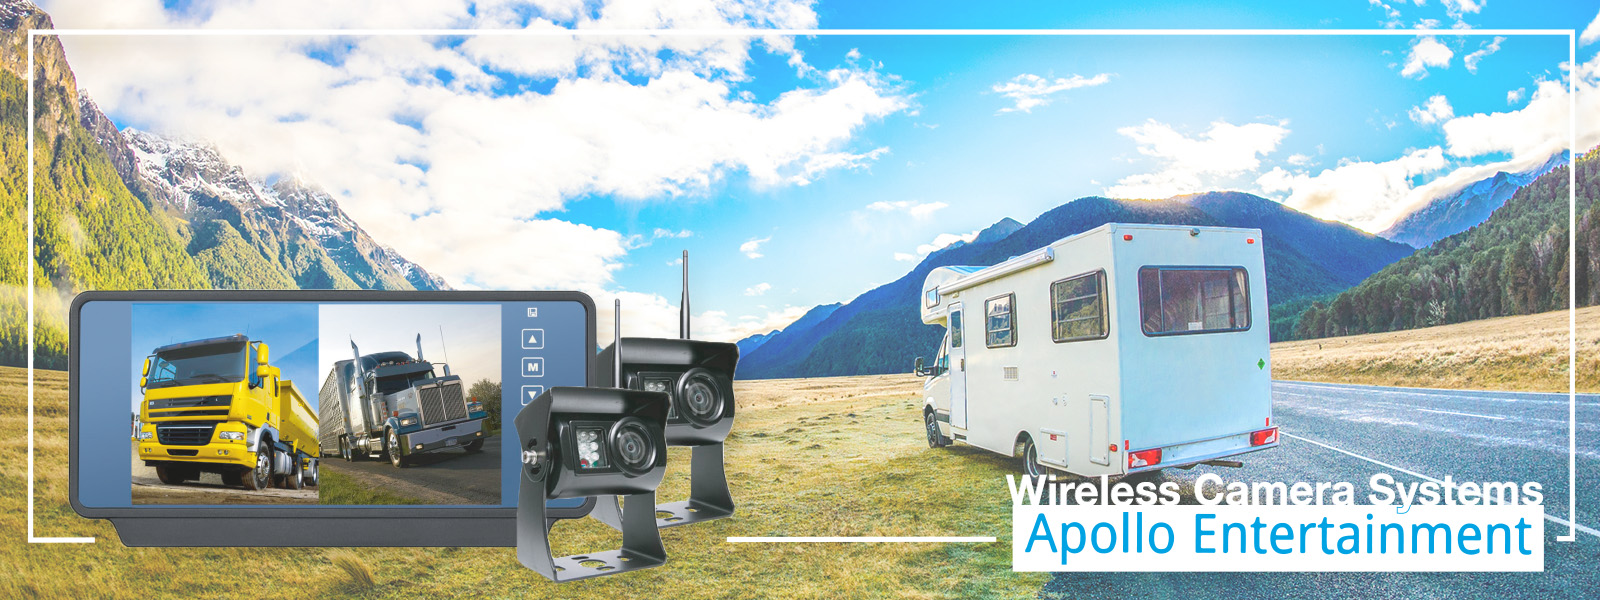 Apollo Banner Wireless Camera Systerm Products